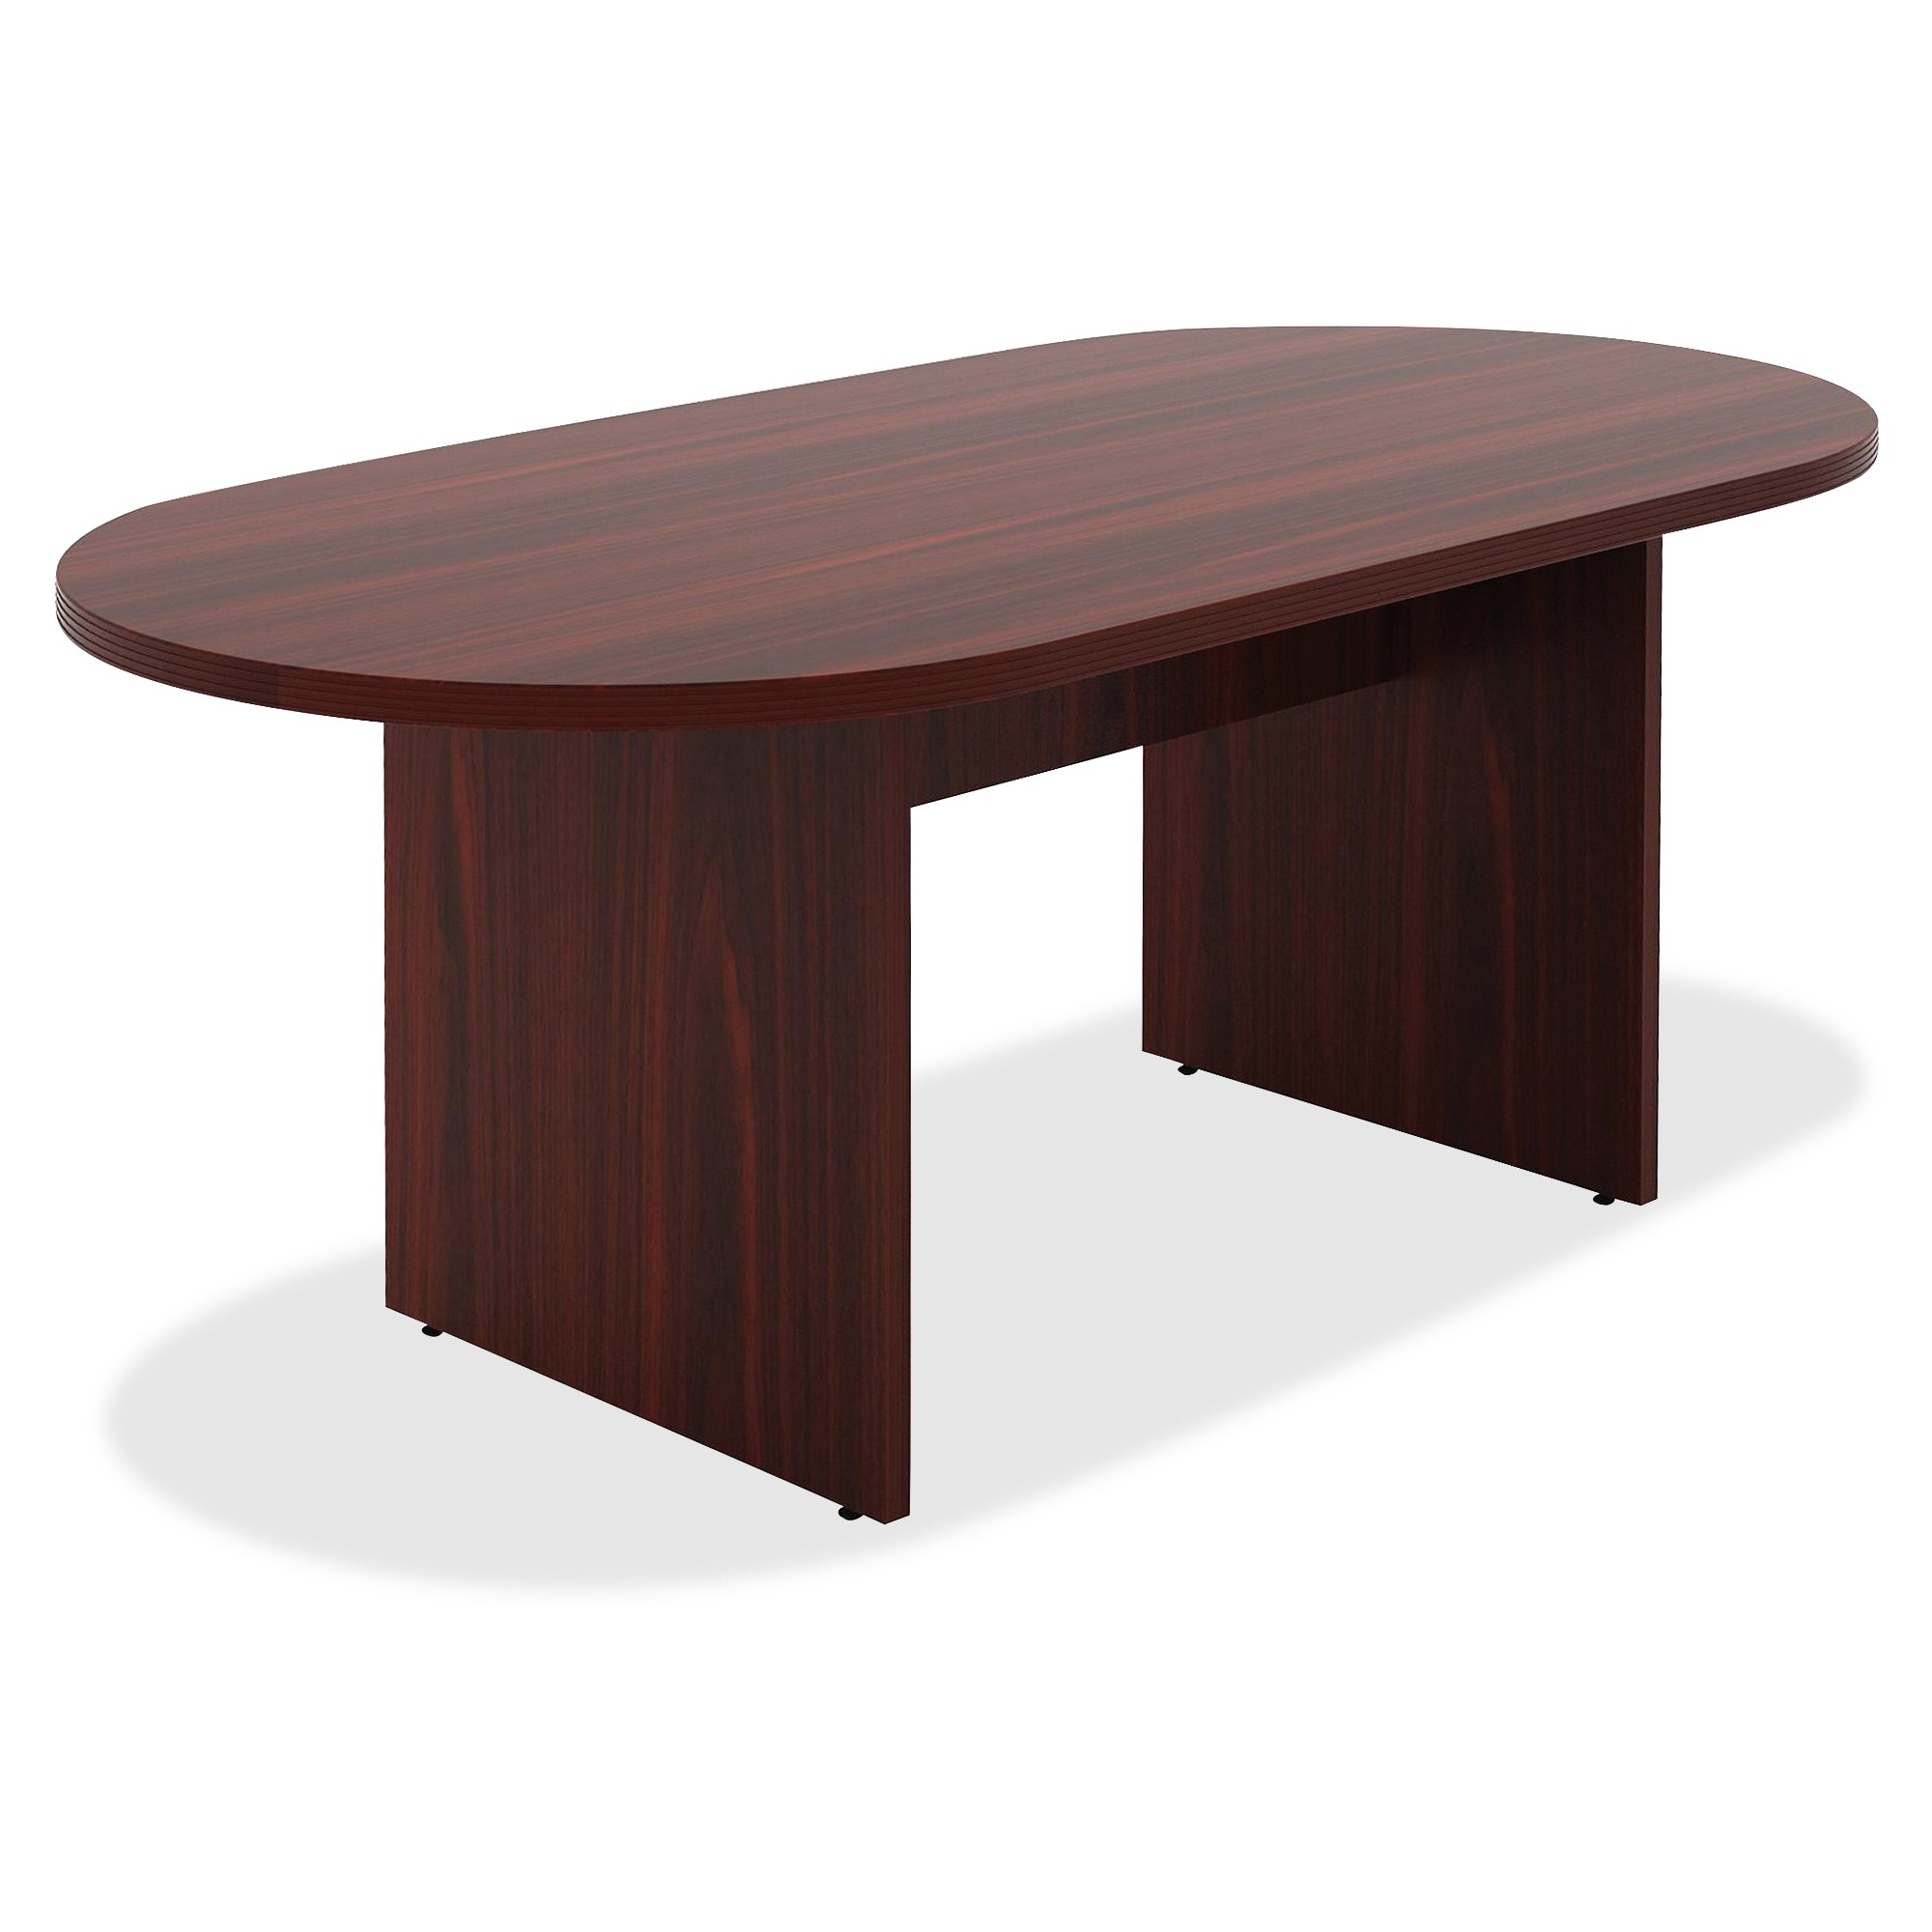 Oval conference table - Lorell Chateau Series Mahogany 6 Oval Conference Table Oval Top Slab Base 36 Table Top Length X 72 Table Top Width X 1 50 Table Top Thickness